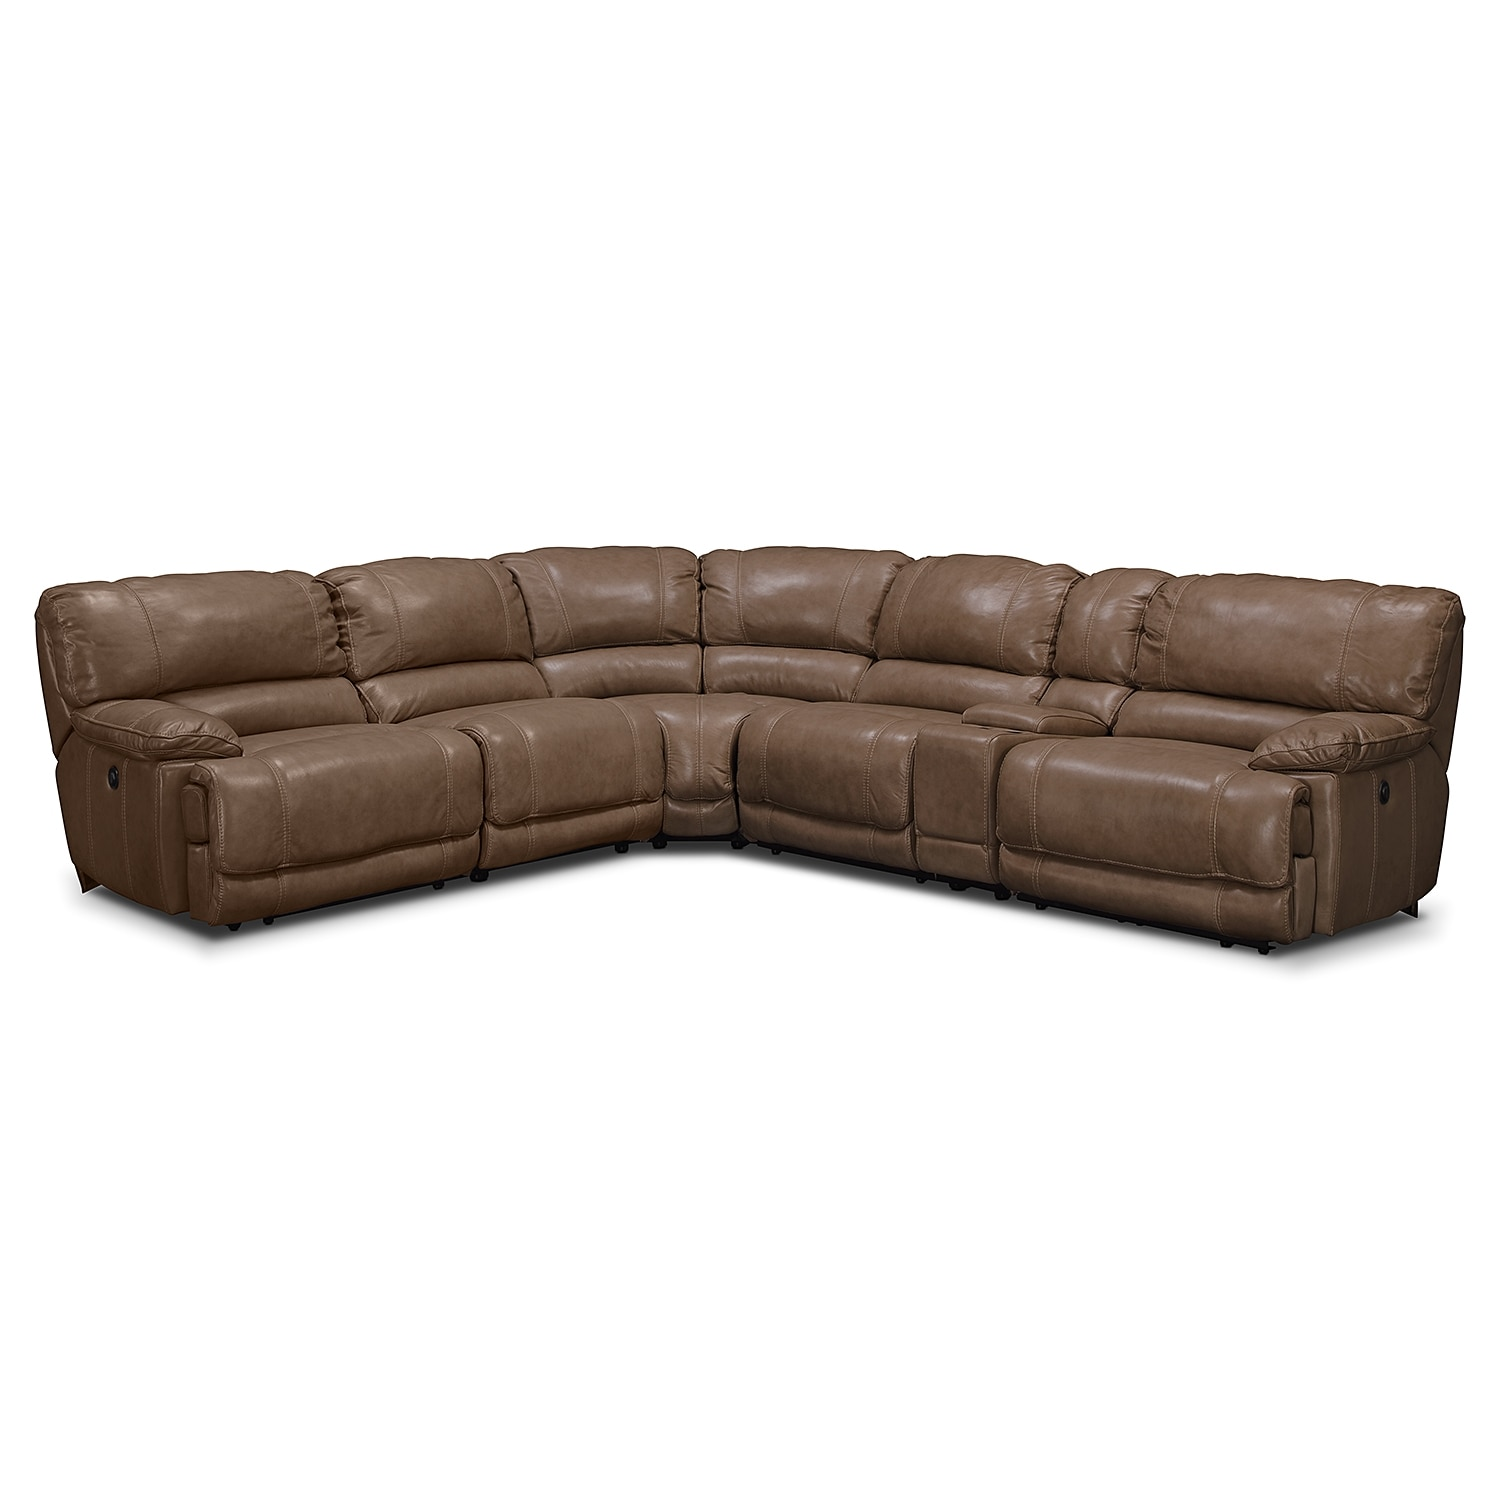 St. Malo 6-Piece Power Reclining Sectional with Modular Console - Taupe by  One80 - St. Malo 6-Piece Power Reclining Sectional With Modular Console